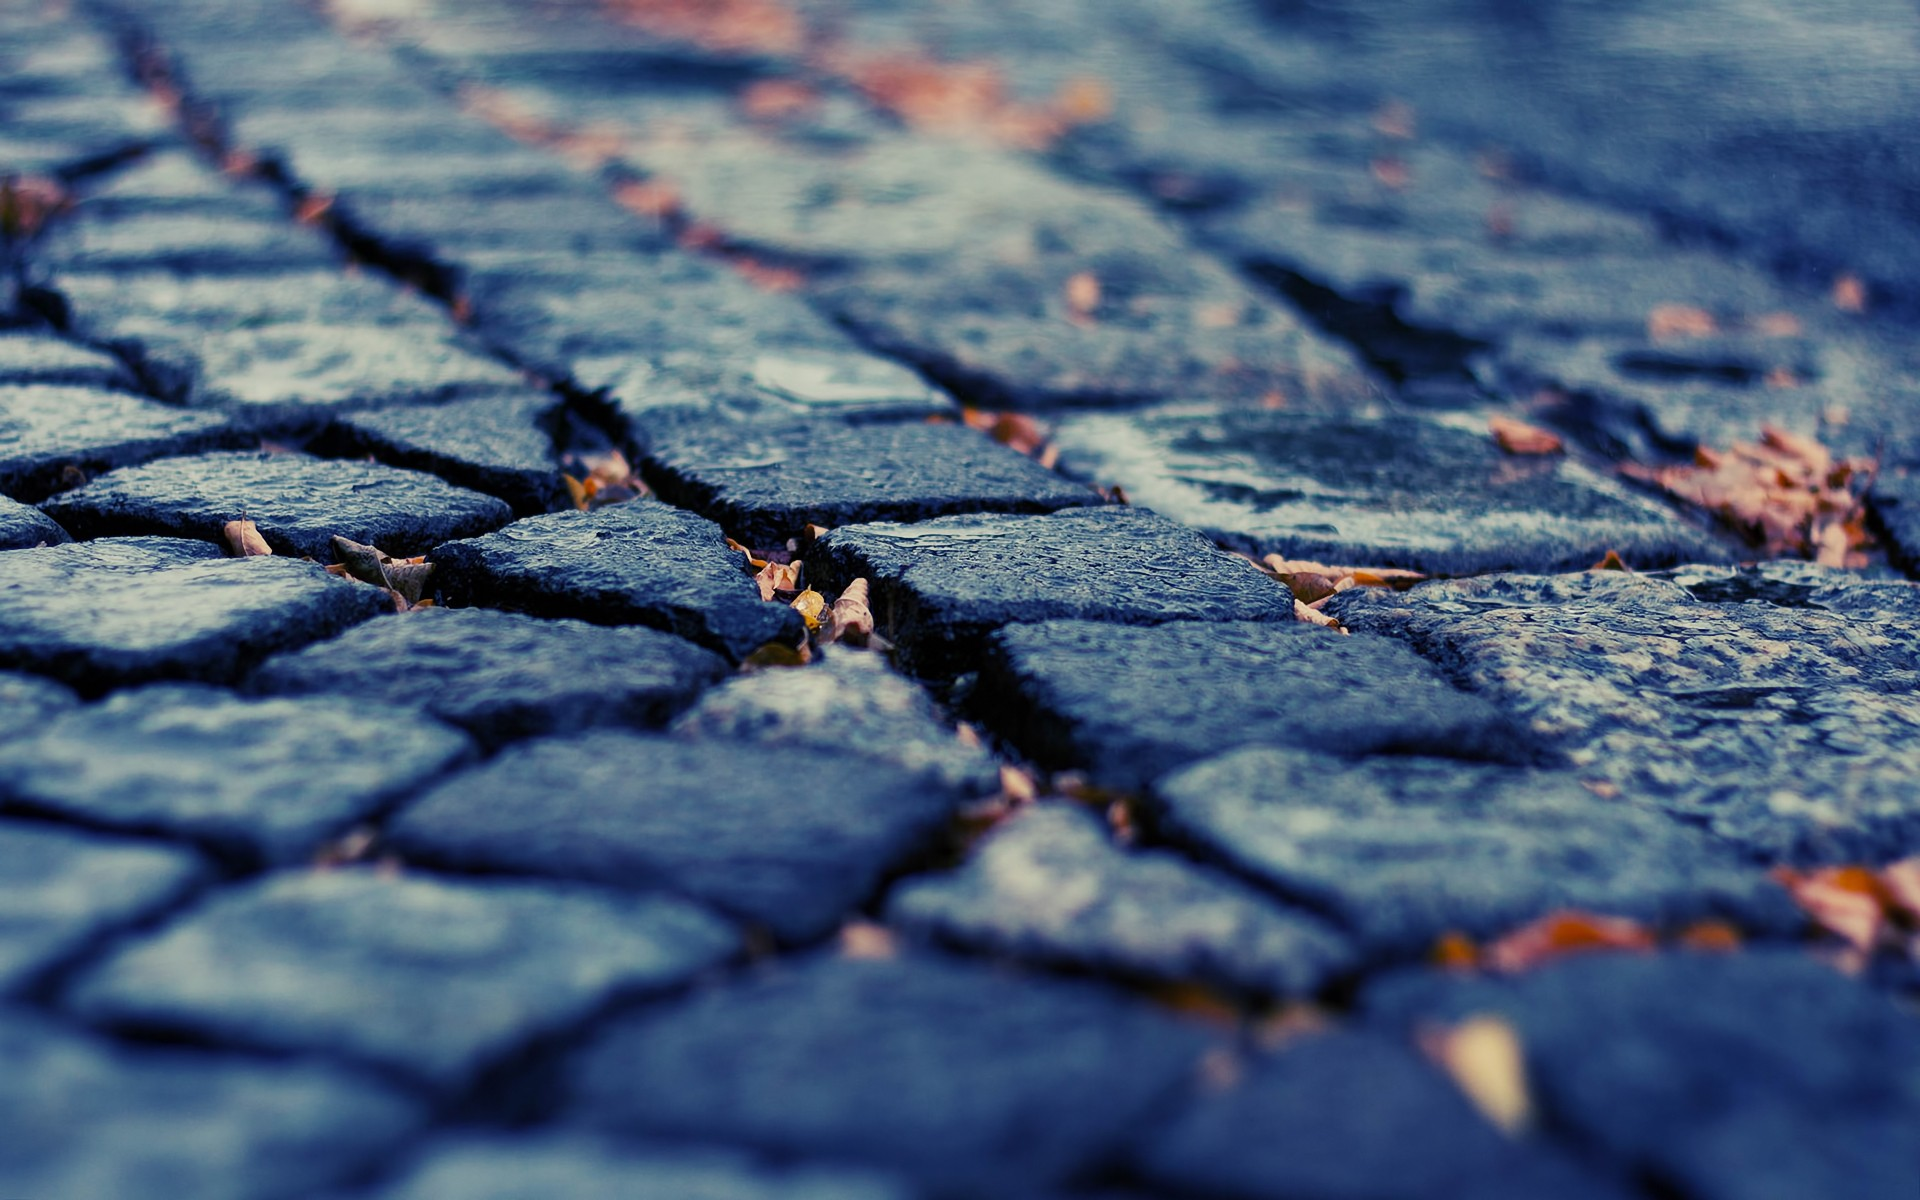 Download Wallpaper pavement depth of field cobblestones fallen leaves 1920x1200